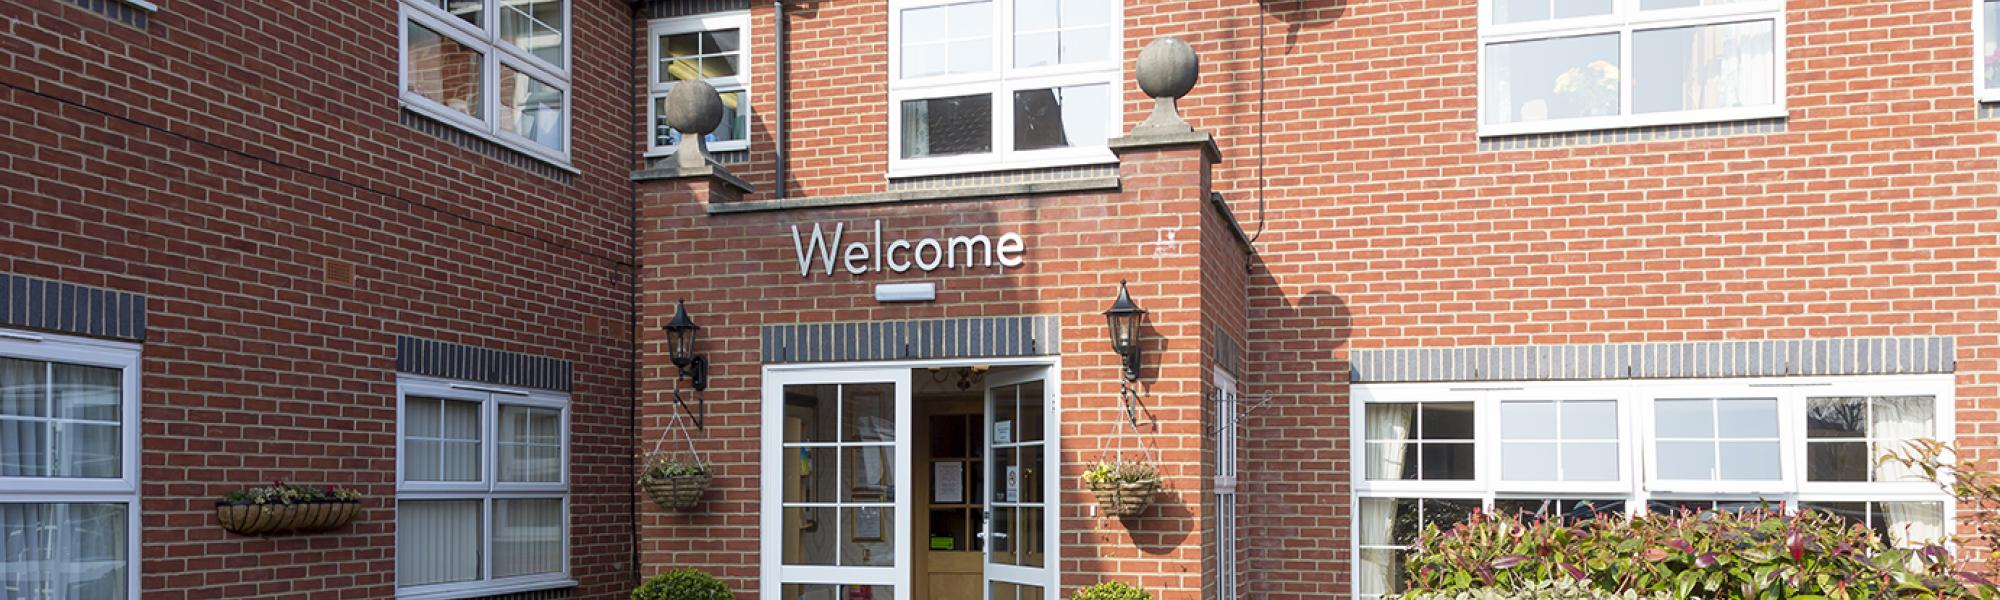 Brighterkind Claremont Parkway Care Home In Northamptonshire